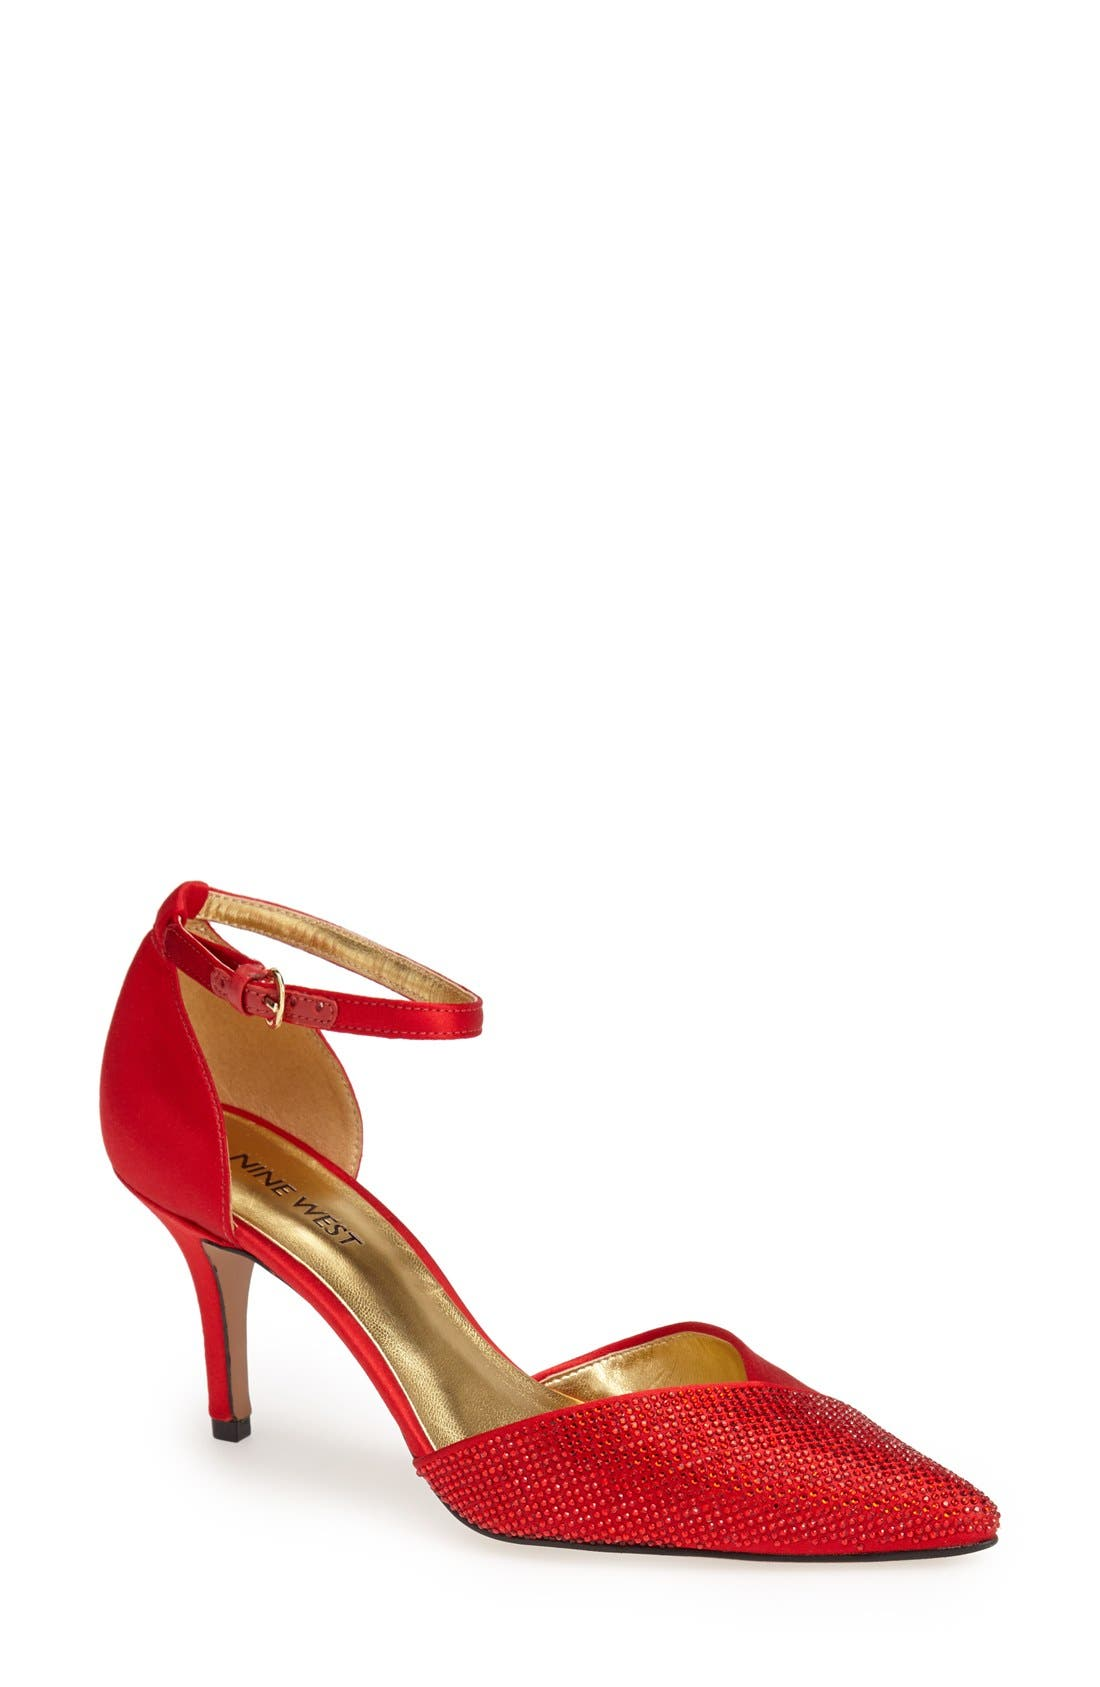 Alternate Image 1 Selected - Nine West 'Knowledge' Pointy Toe Satin Pump (Women)